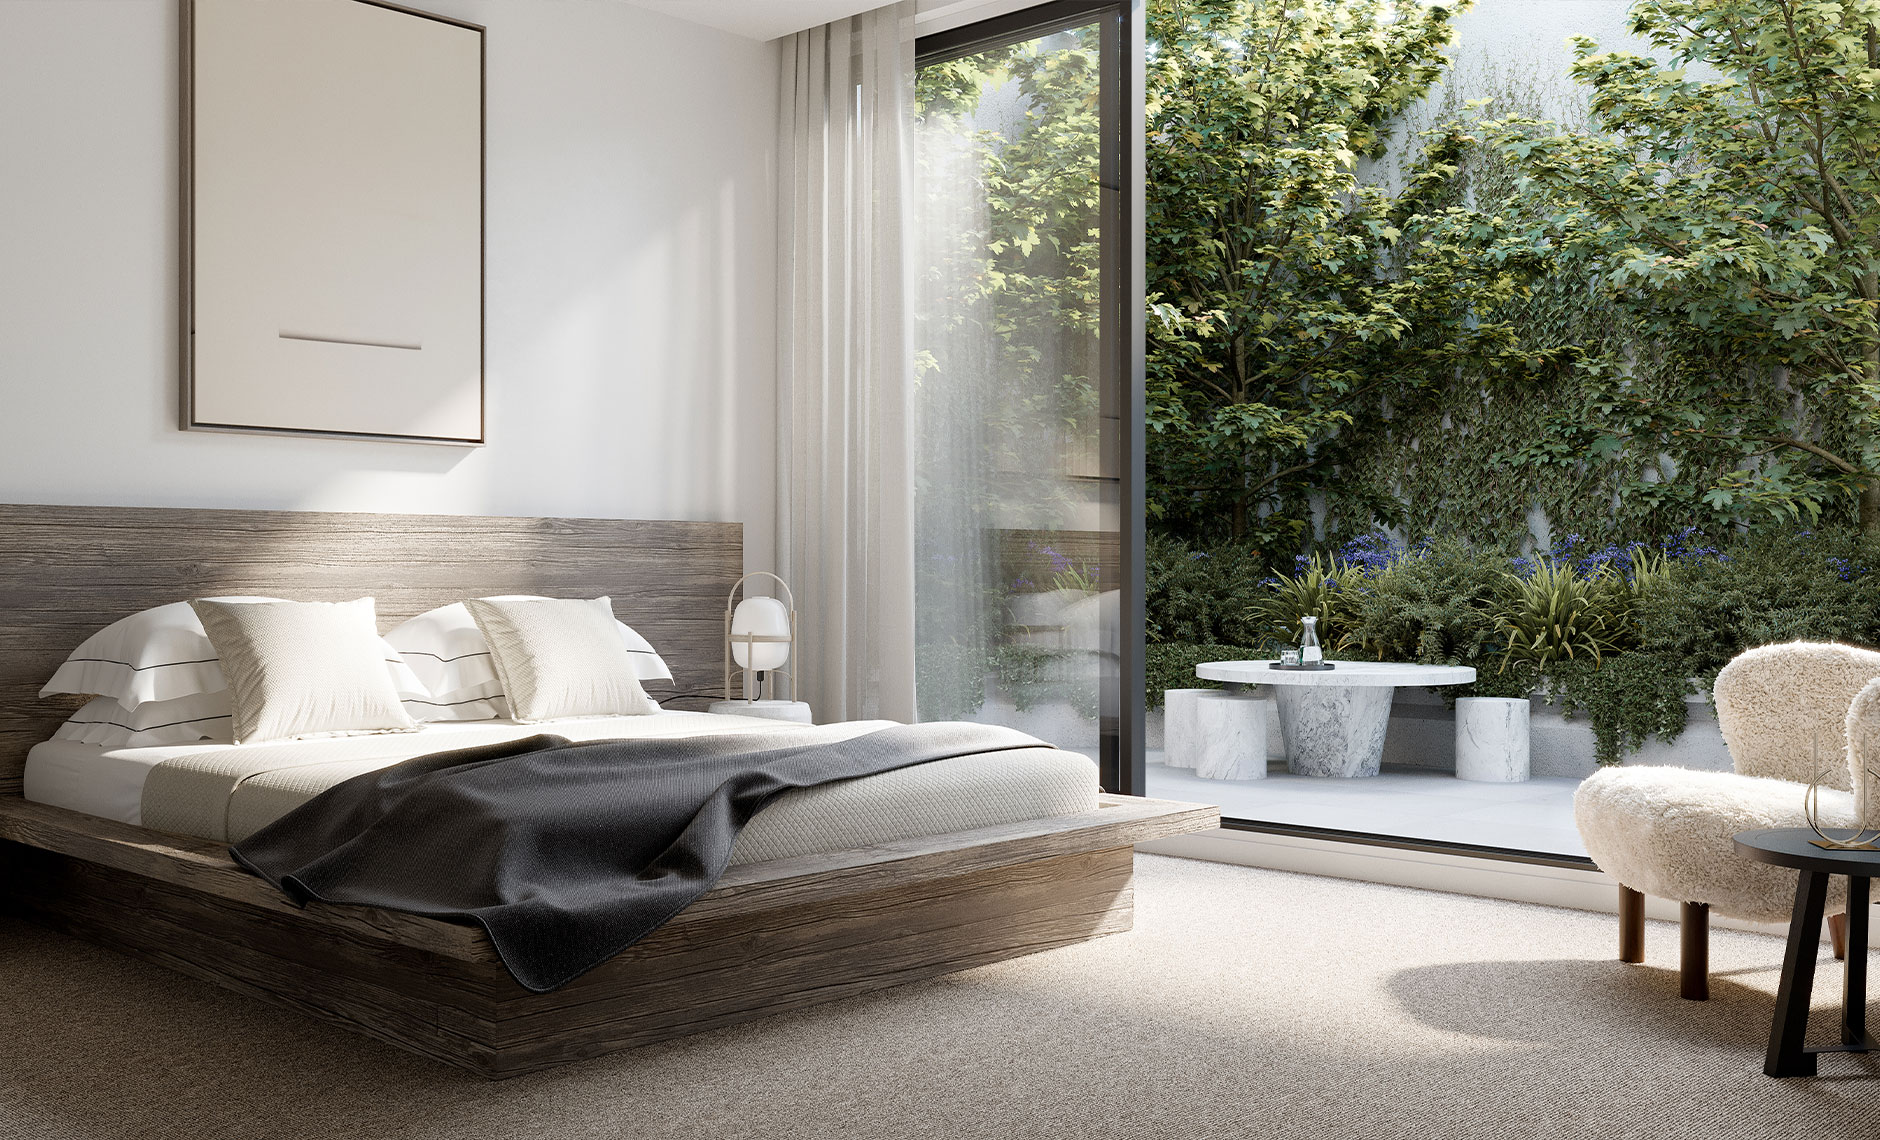 Interiors project in Rouse Hill, NSW